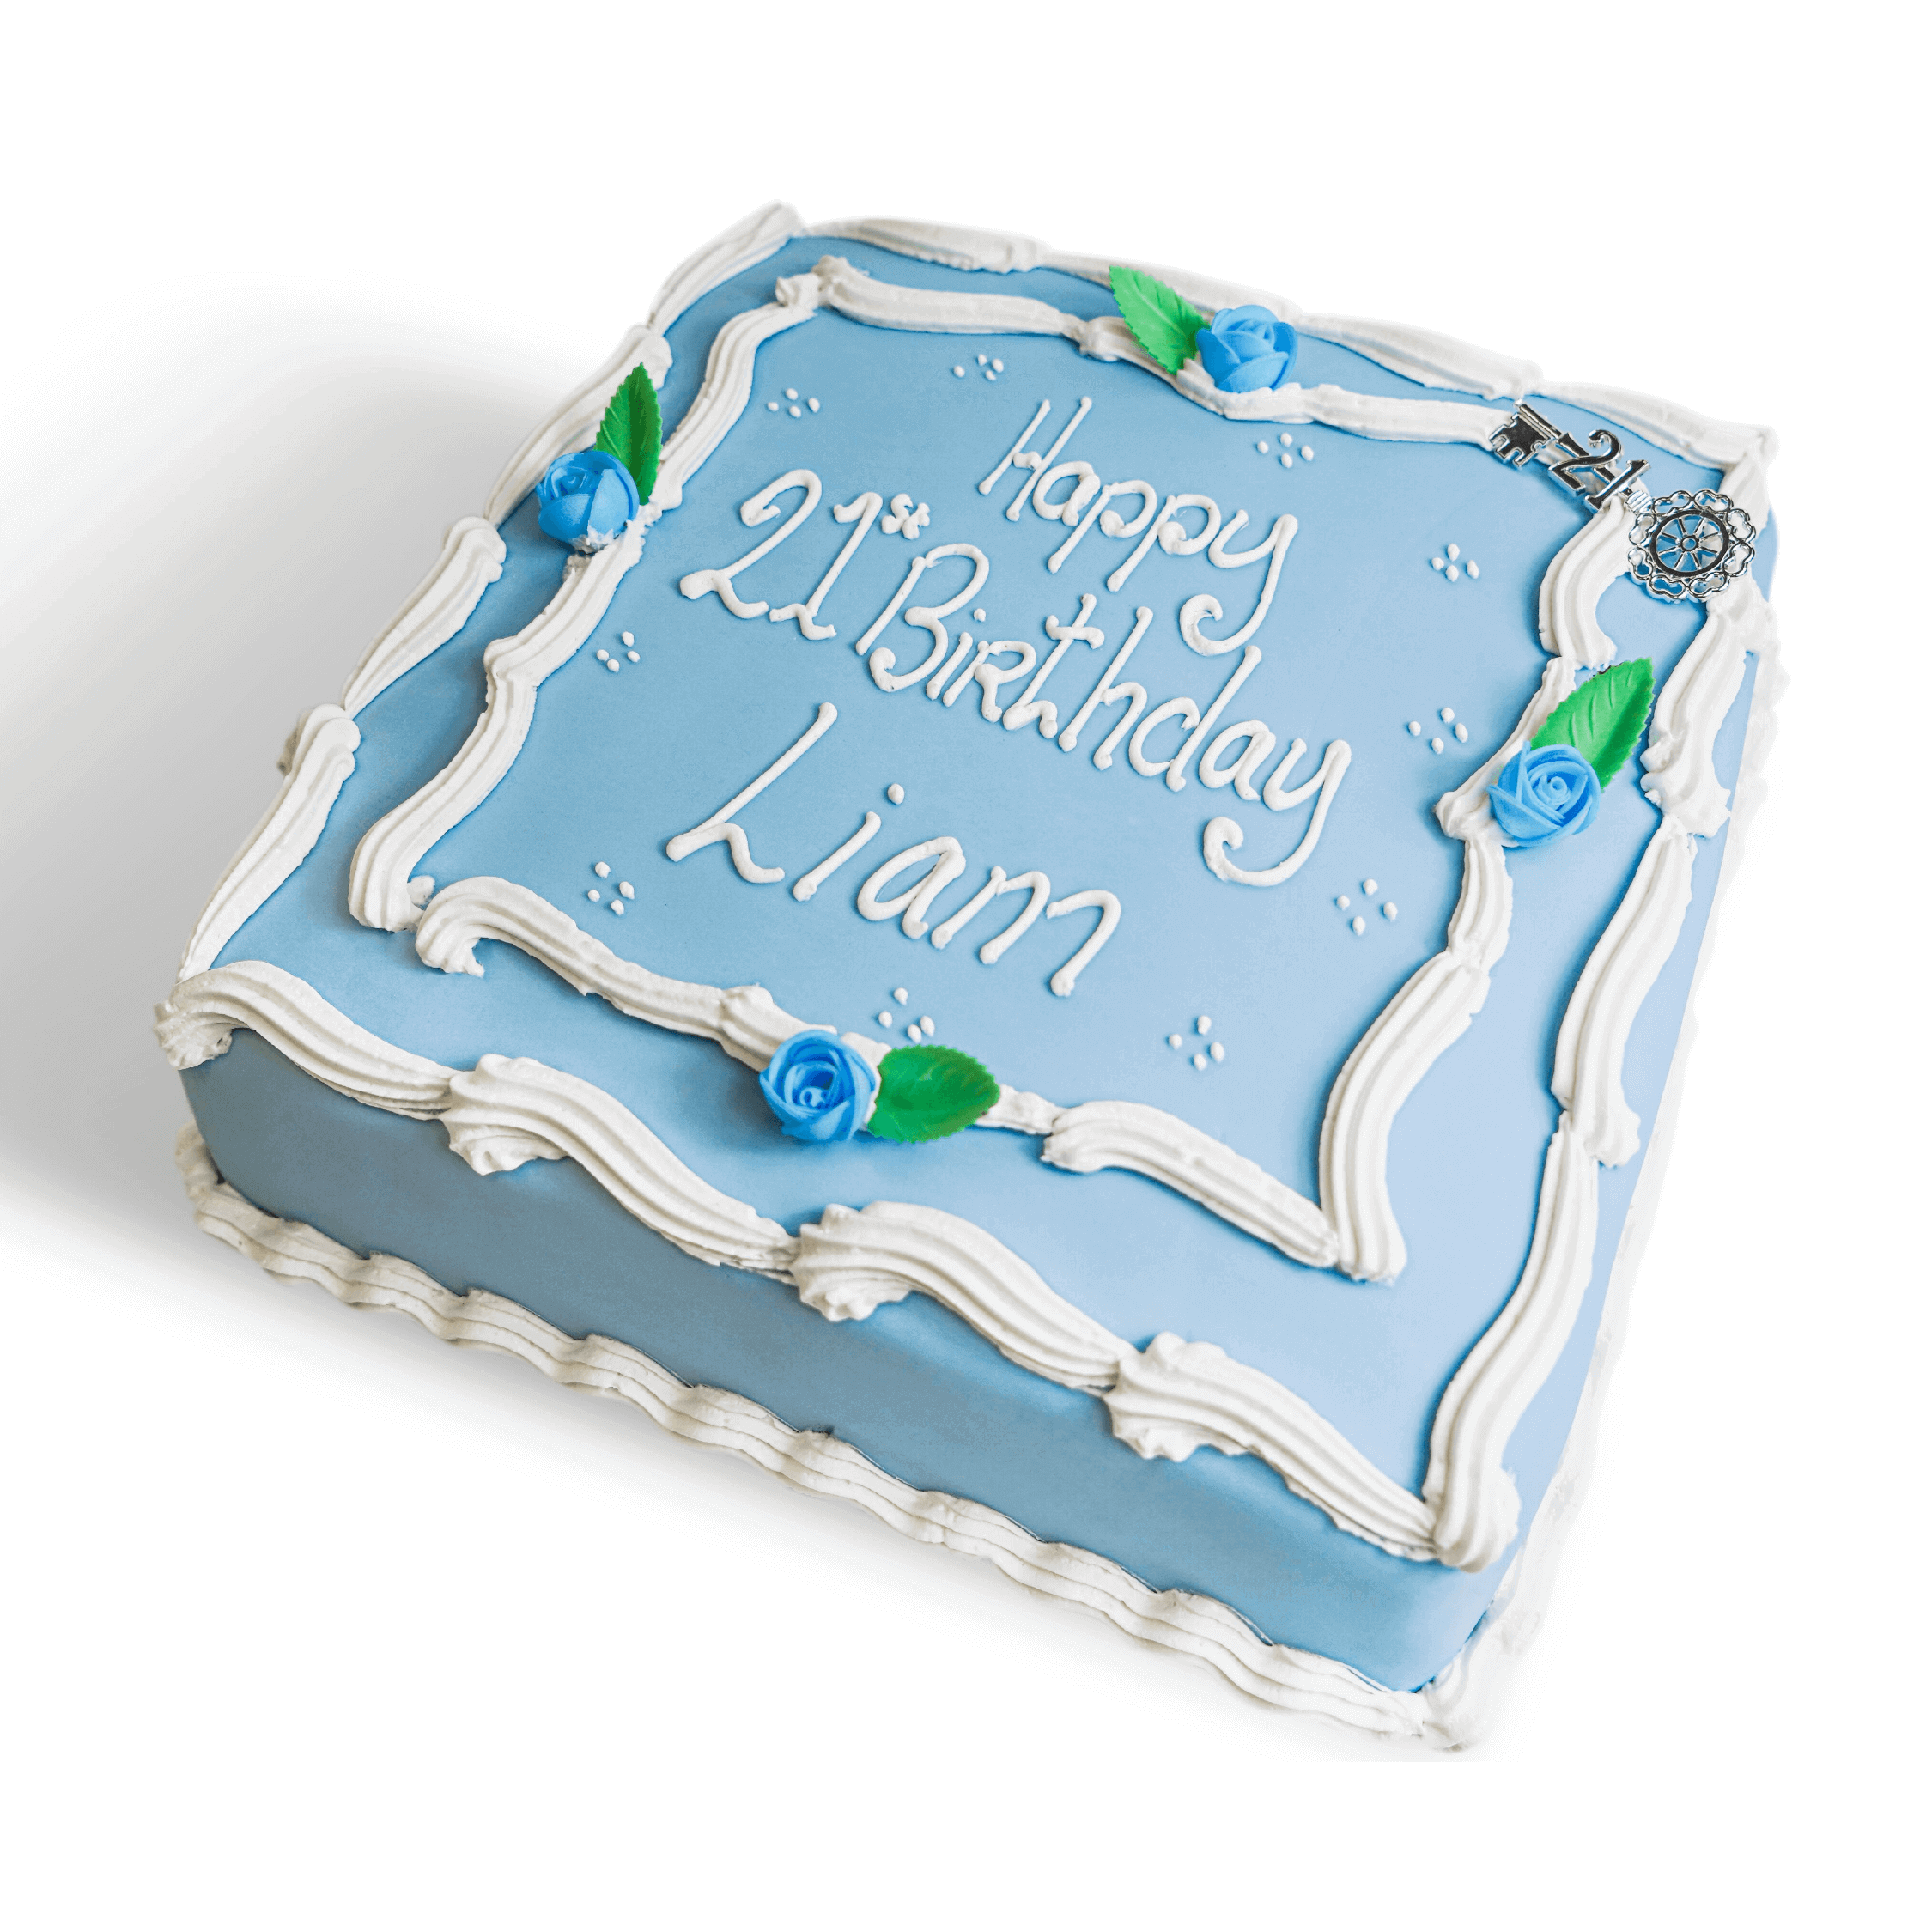 A blue birthday cake with white writing